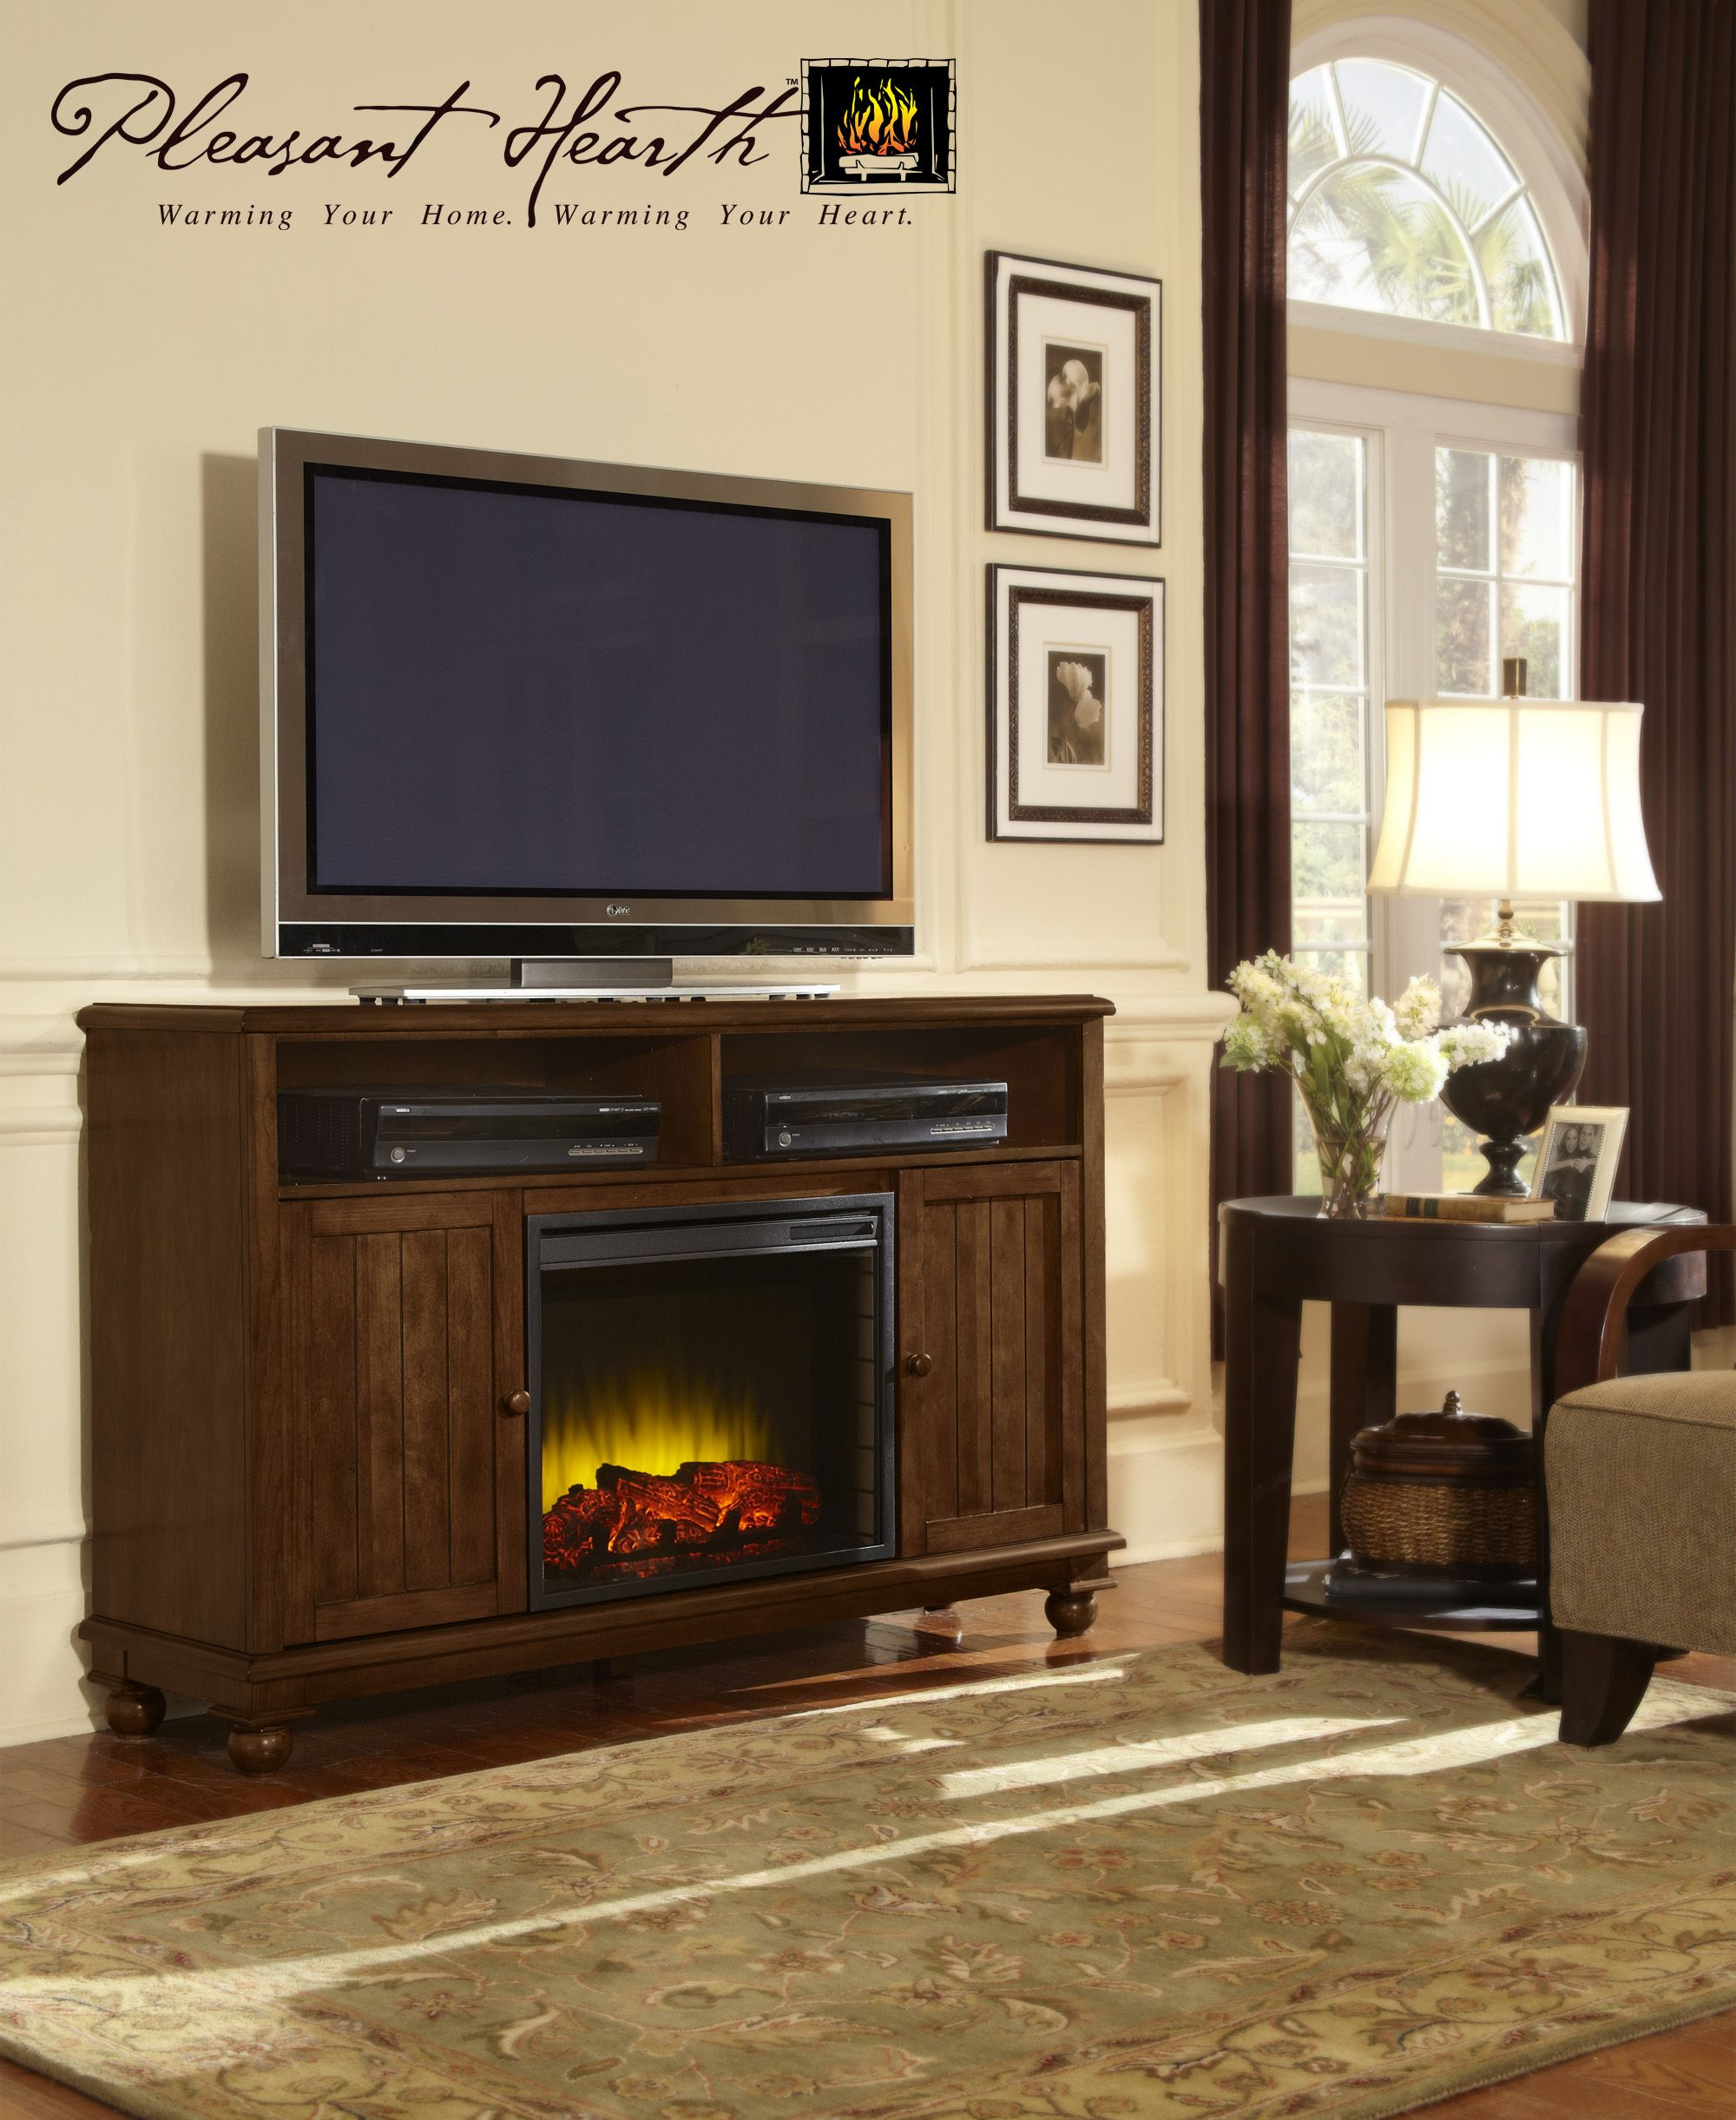 Ghp Group Fireplaces Love the fireplace and TV look By The Pleasant